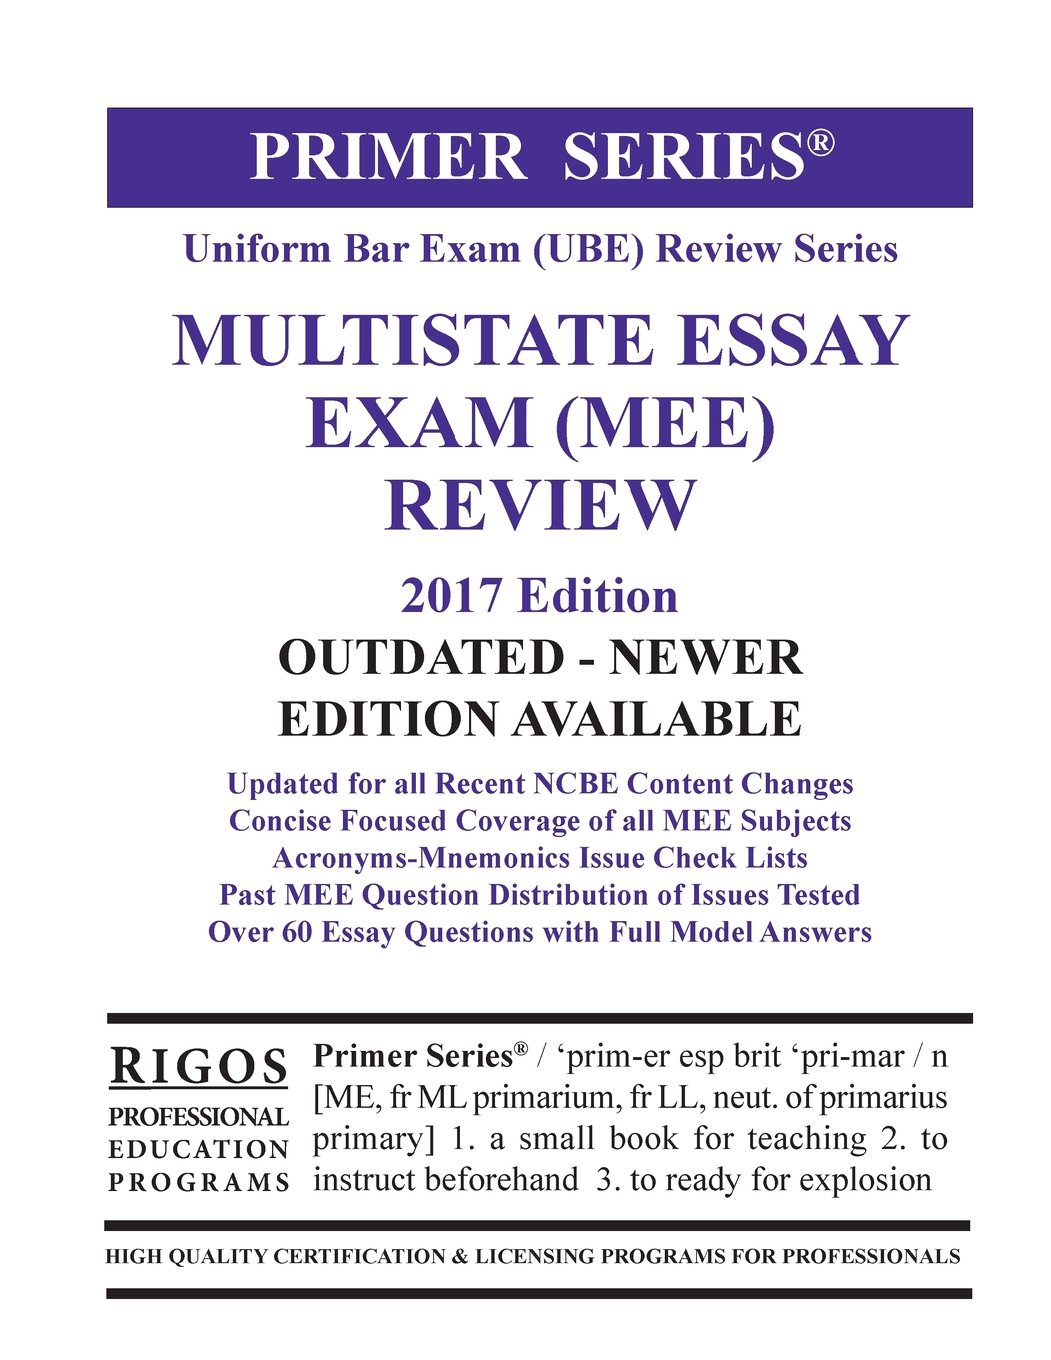 rigos primer series uniform bar exam ube review multistate essay  rigos primer series uniform bar exam ube review multistate essay exam mee 2017 edition mr james j rigos 9781535579780 com books